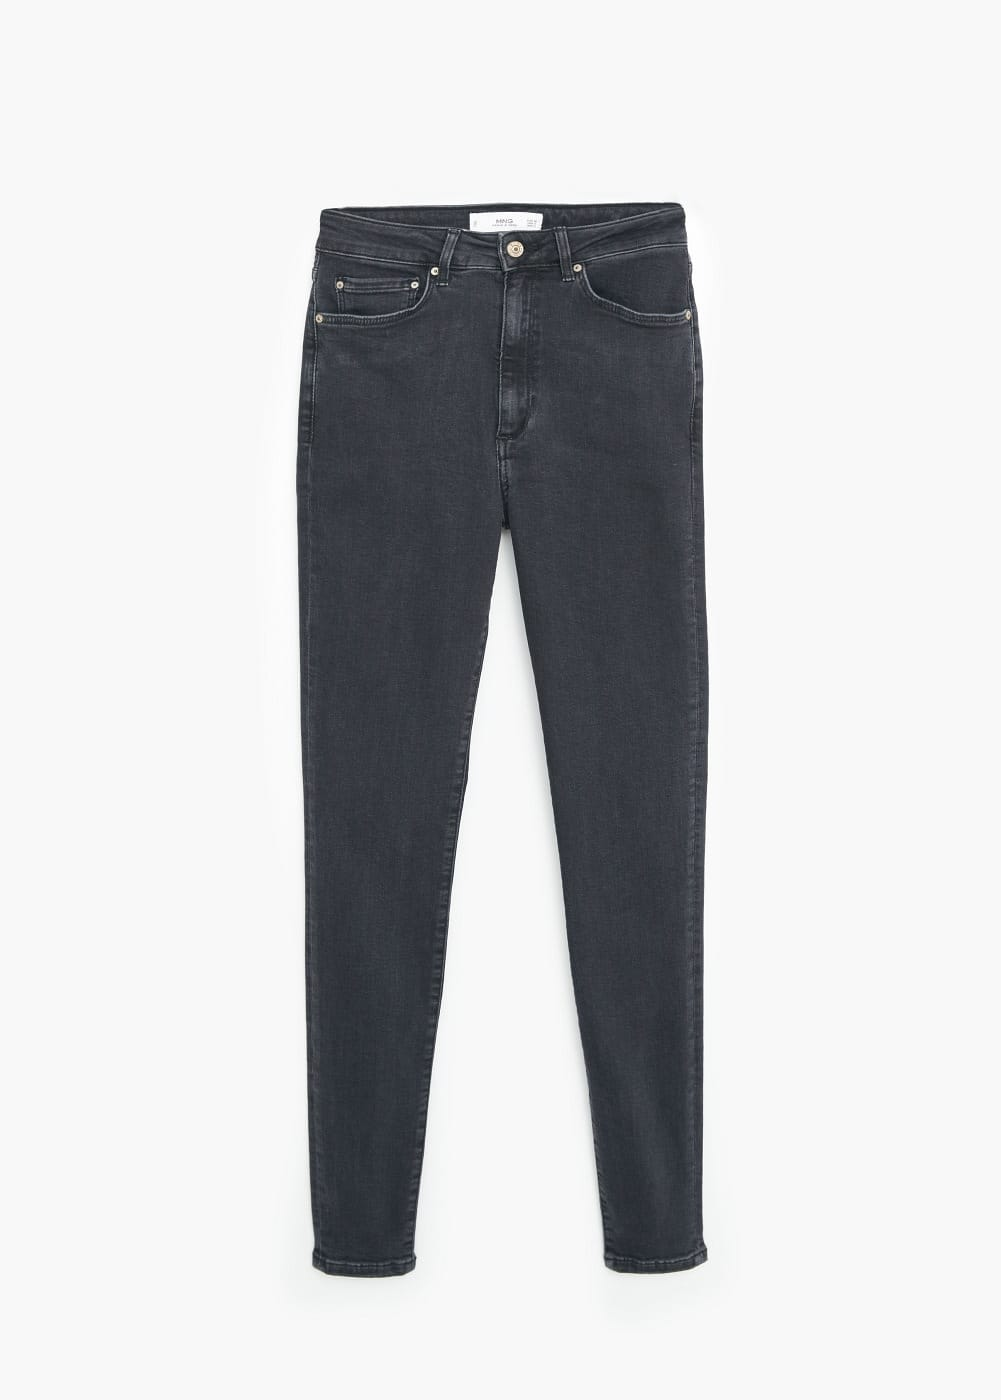 black denim2.jpg